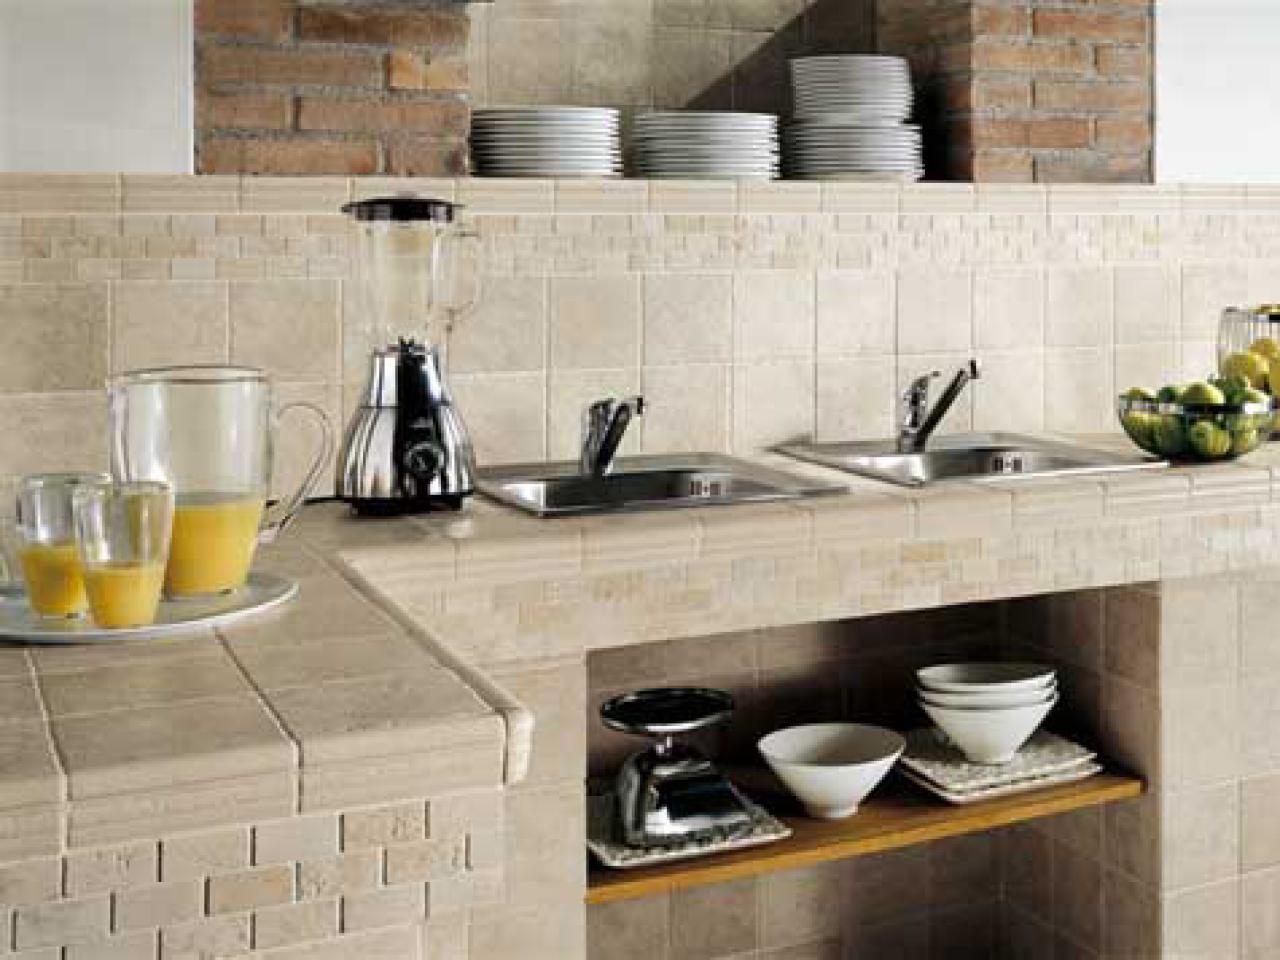 Kitchen Countertops Tile Kitchen Countertops Pictures & Ideas From Hgtv  Hgtv